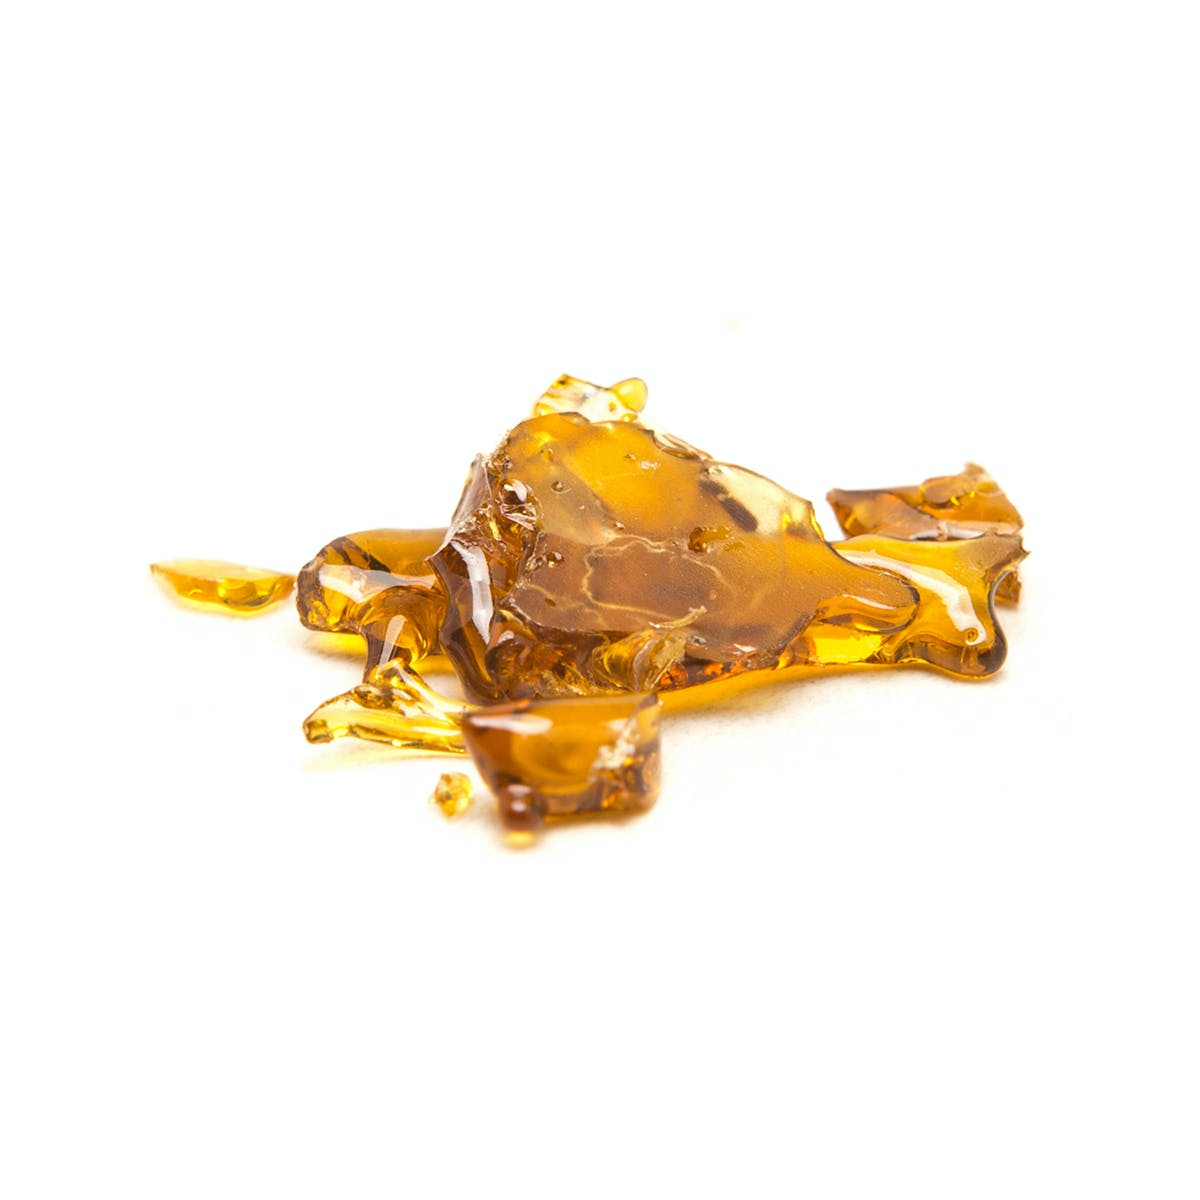 Buddha Budder | Featured Products & Details | Weedmaps